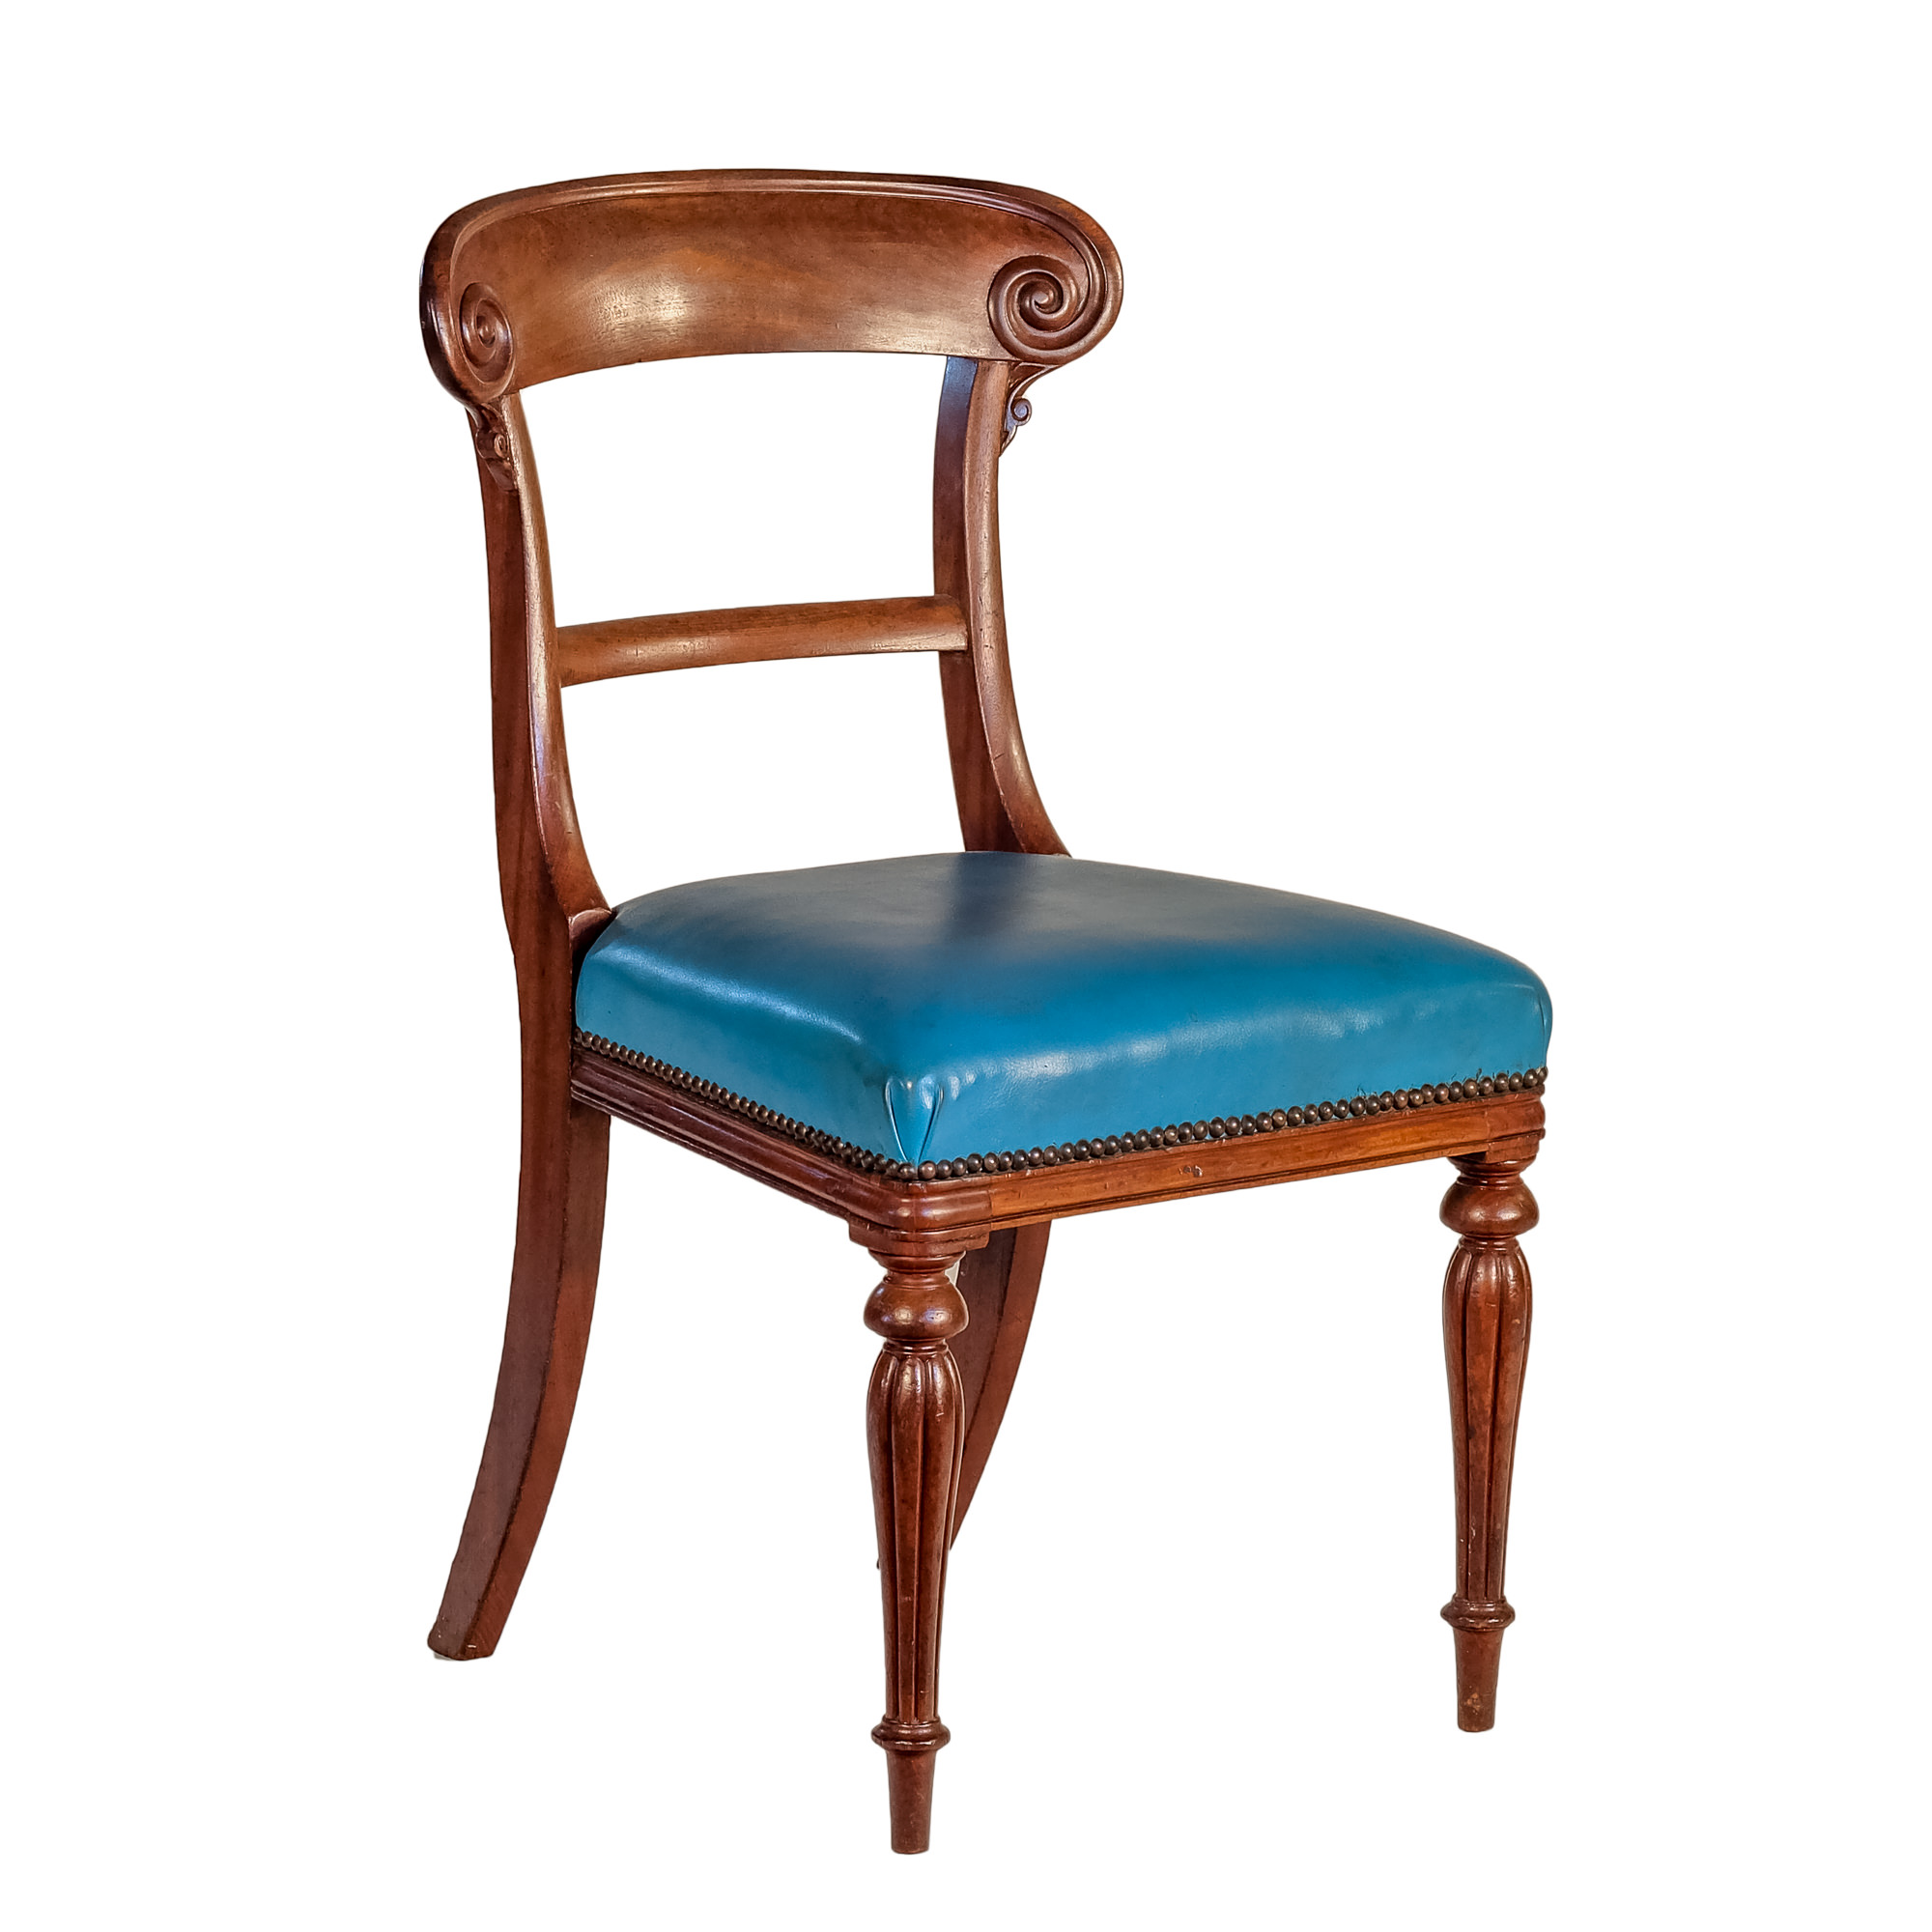 'Victorian Mahogany Dining Chair with Blue Leather Upholstery Circa 1860'